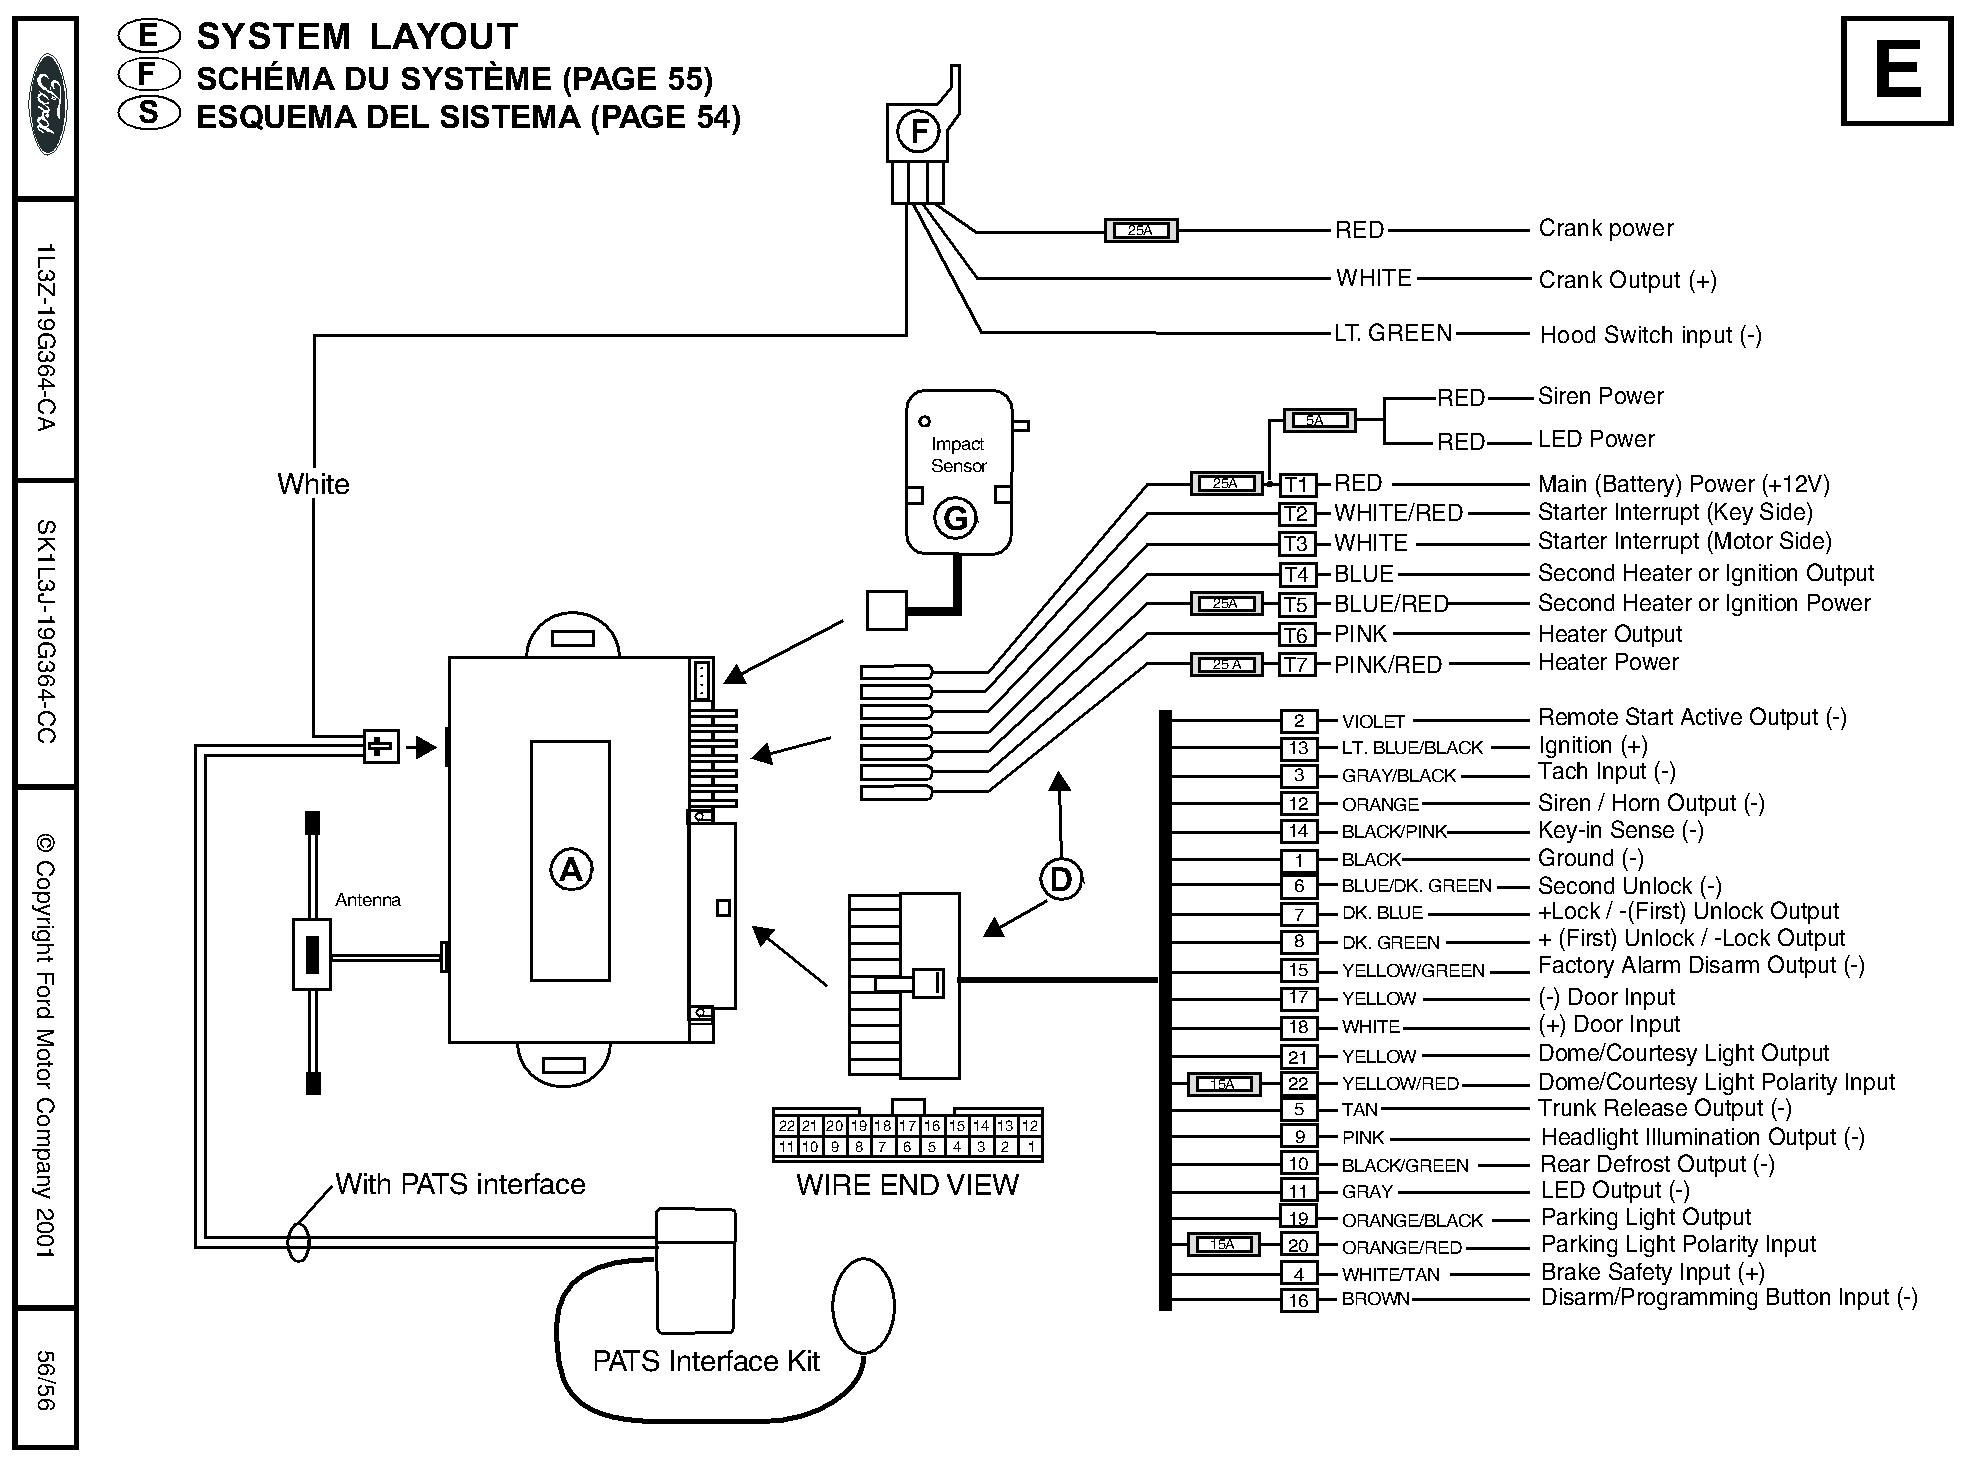 2008 Ford Escape Ignition Wiring Diagram: Wiring Diagram 2005 Ford Escape  u2013 The Wiring Diagram